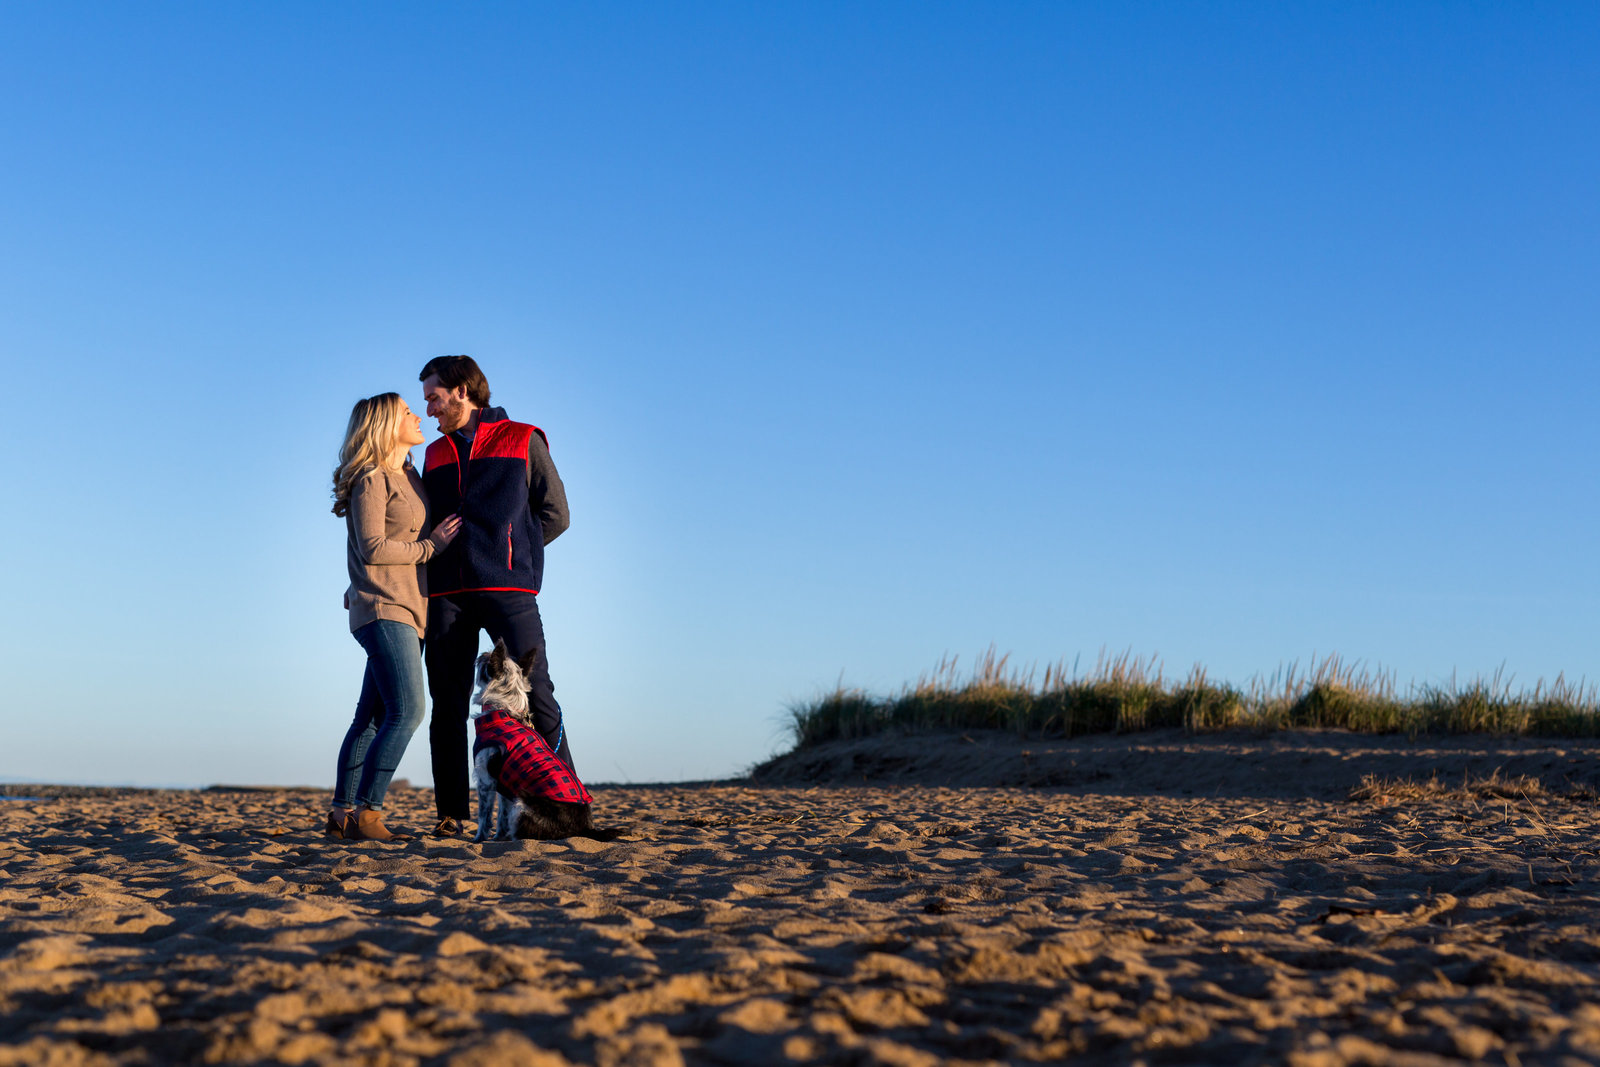 Plum-Island-New-Hampshire-Wedding-Photographers-Engagement-Outdoor-Beach-Dog-Fall-I-AM-SARAH-V-Photography-Photo